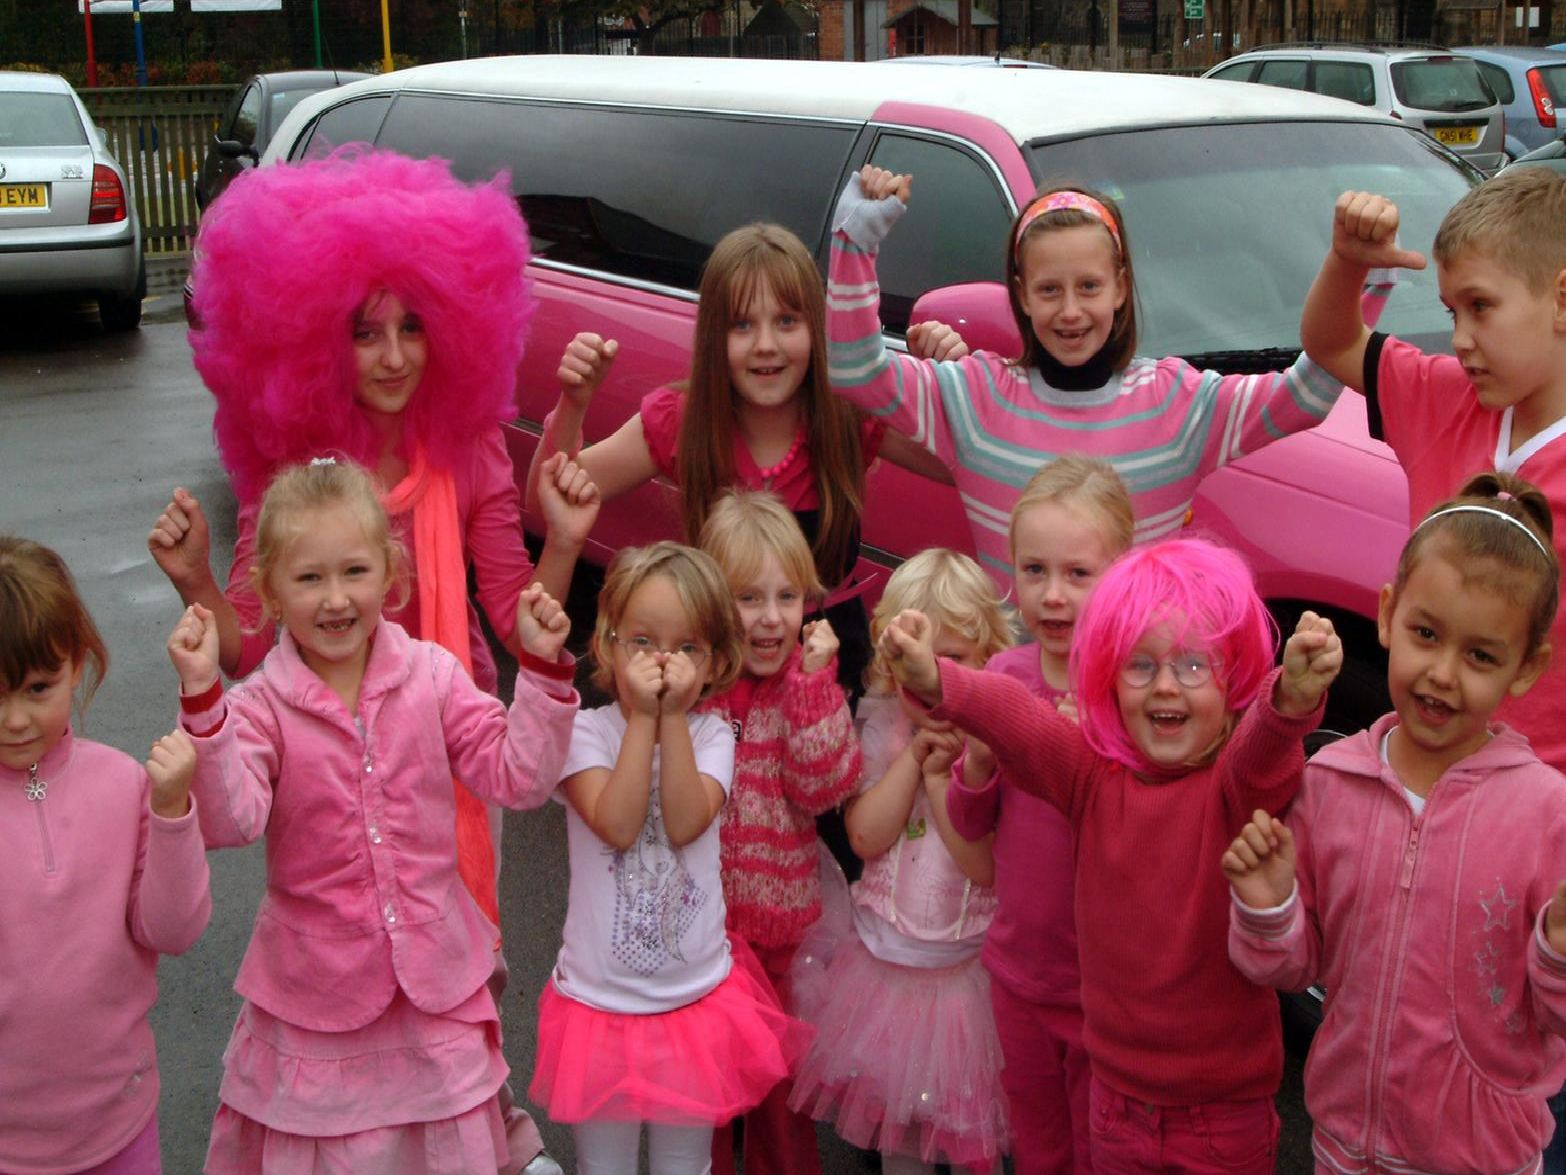 2009: Pupils from Ryton Park School in Worksop dress in pink to raise money for Cancer Research. Are you on this picture?